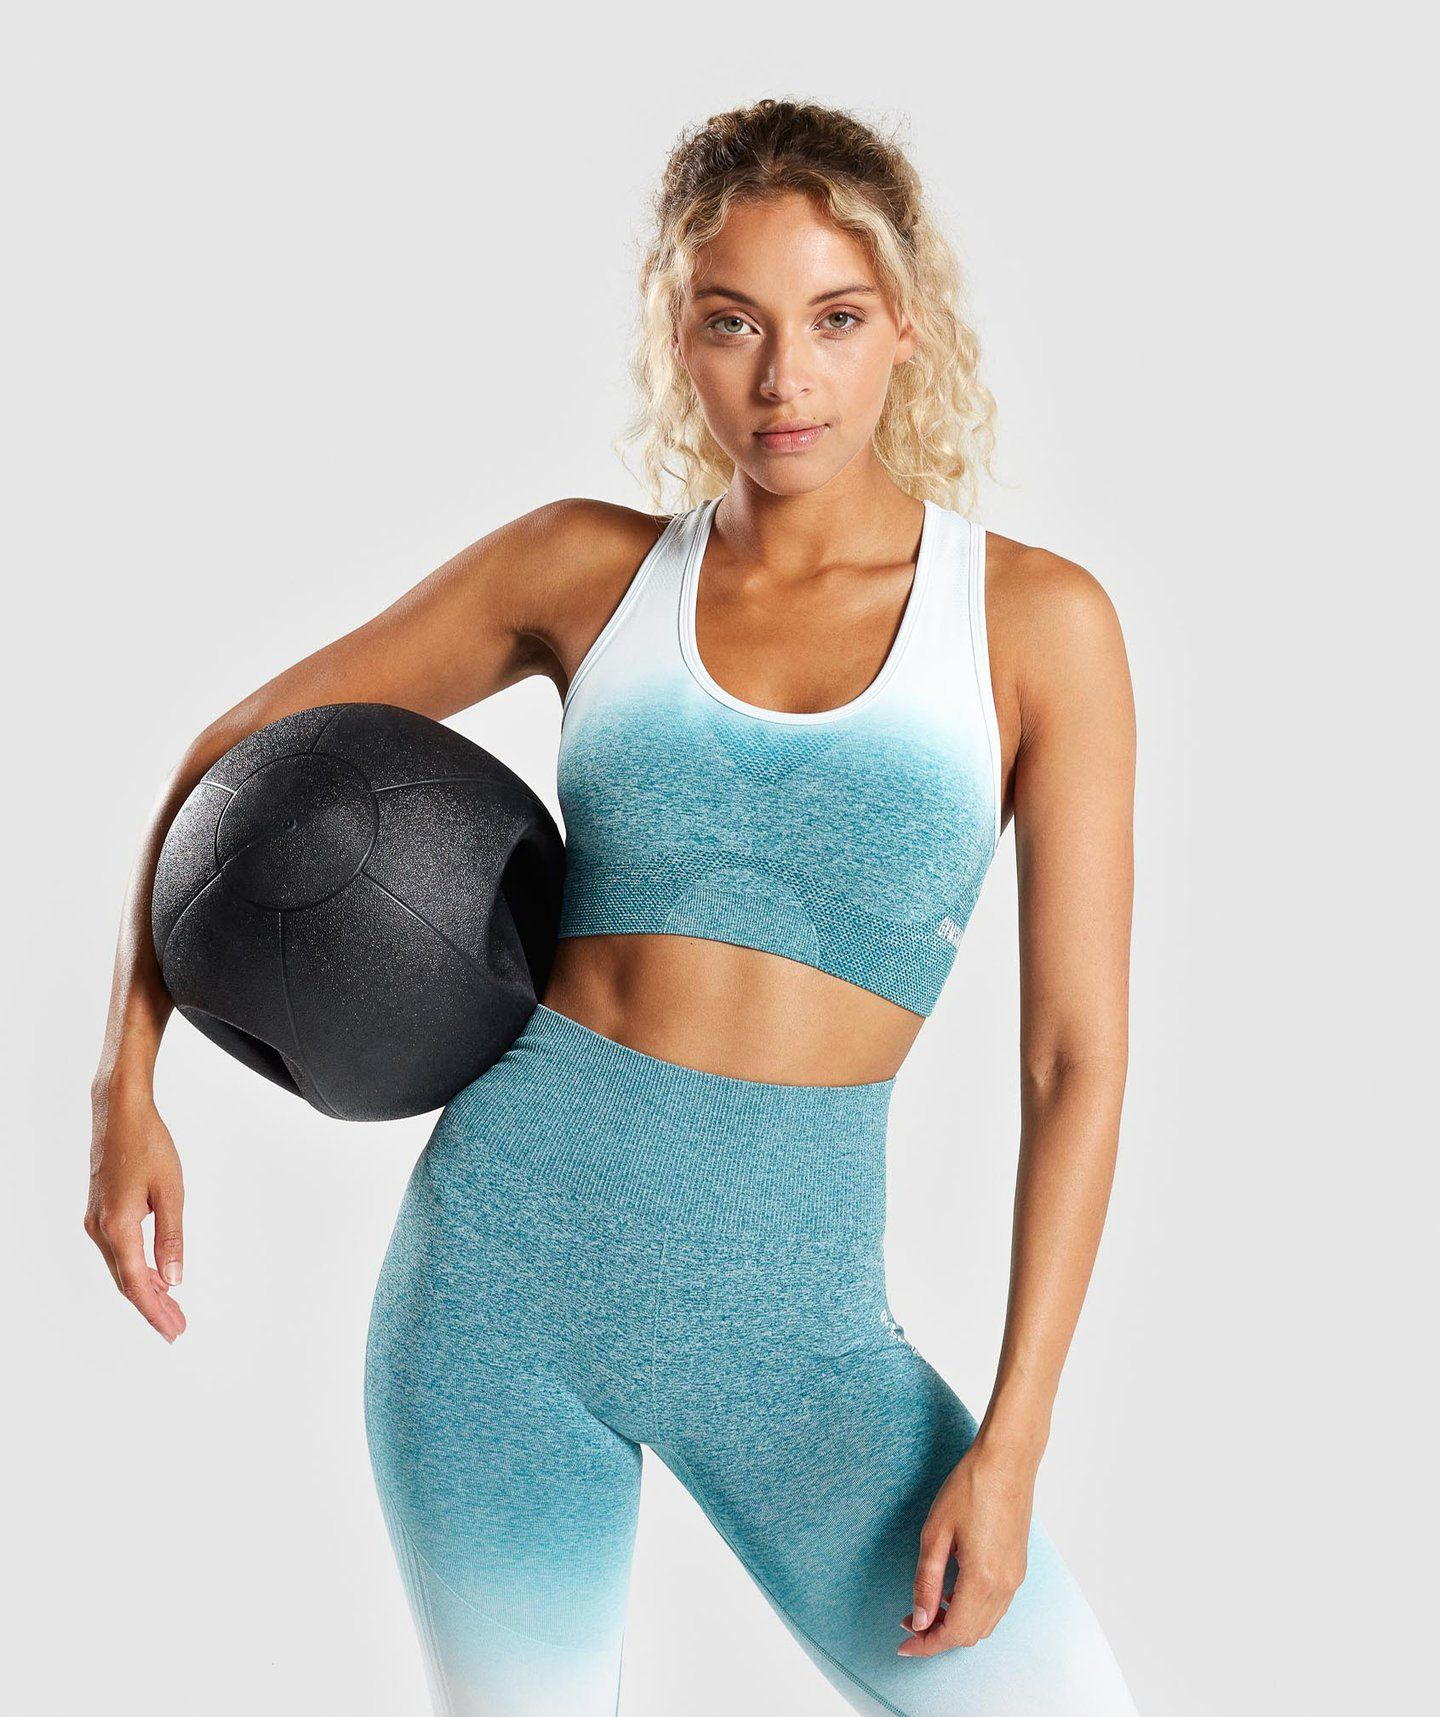 082ac0c2ee14d Gymshark Ombre Seamless Sports Bra - Deep Teal Ice Blue in 2019 ...